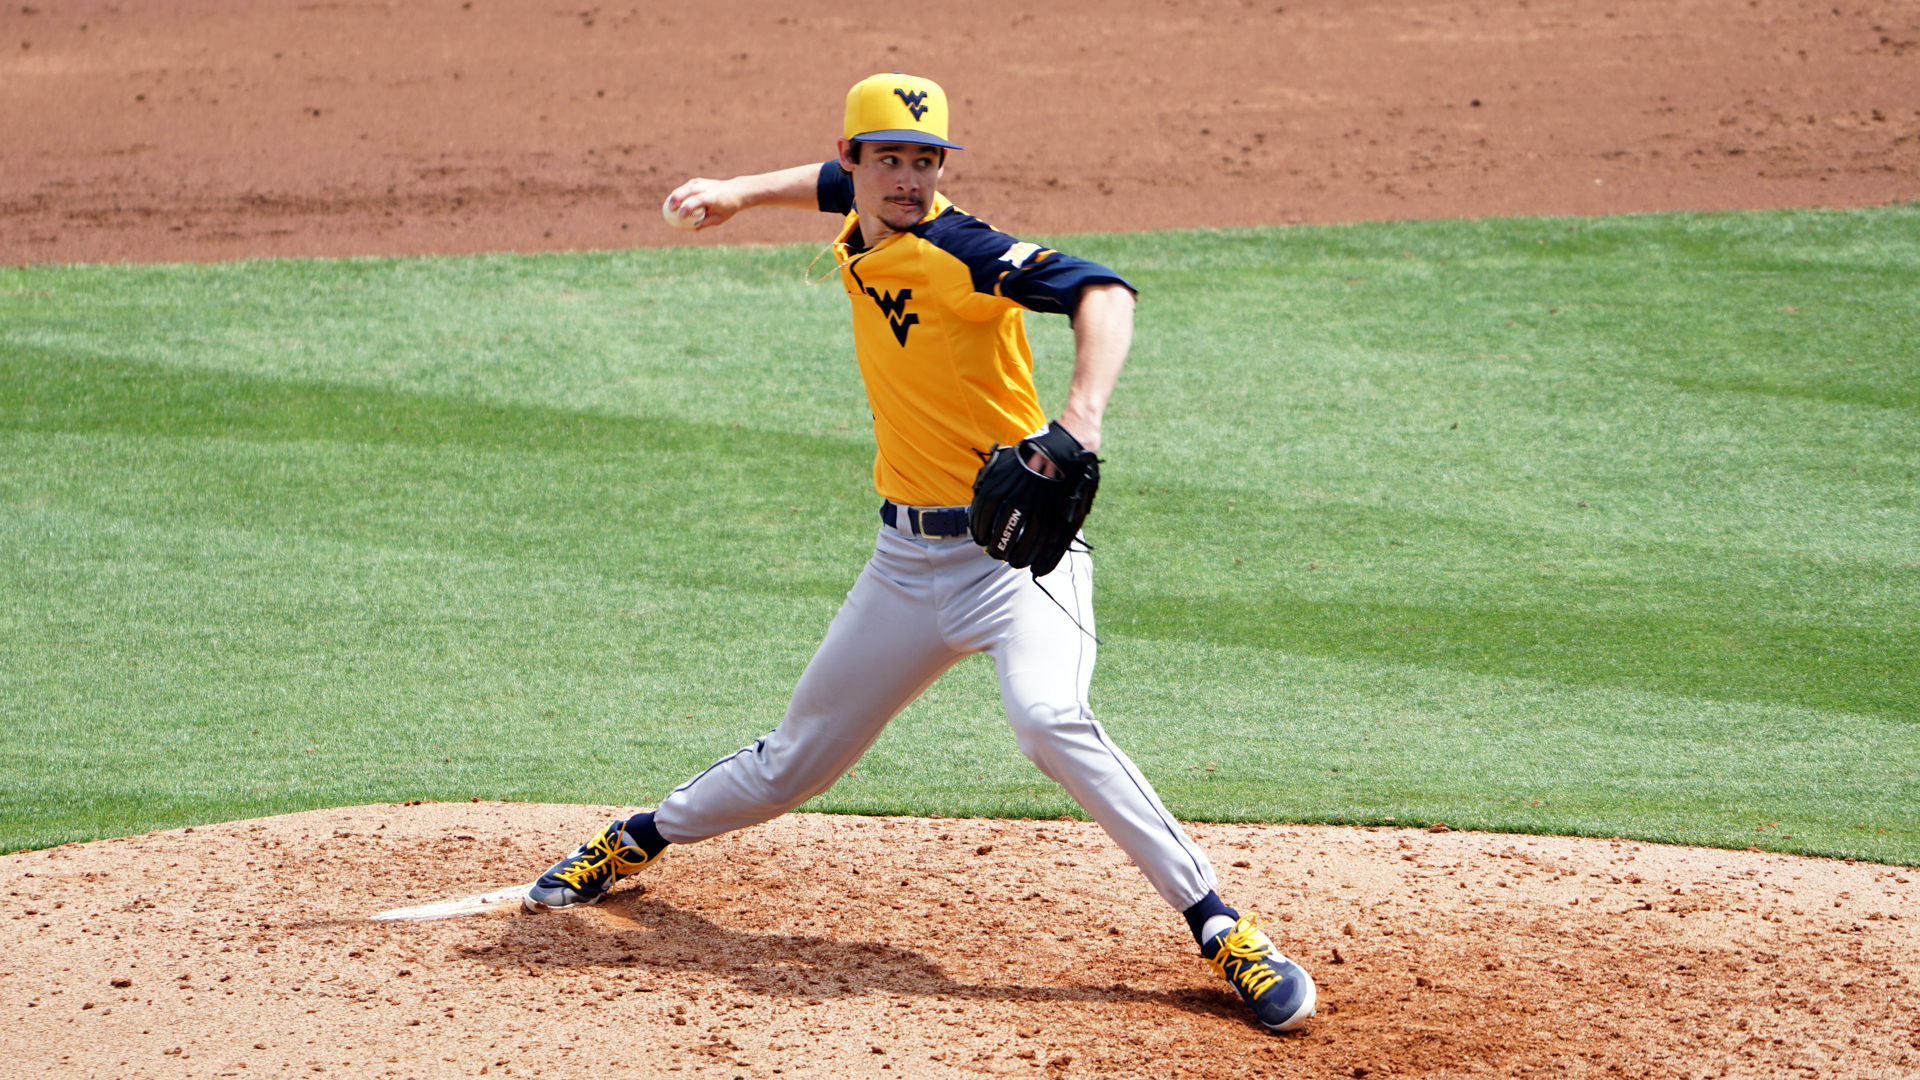 5b692b578ab9d WVU Rallies to Win Series at No. 23 OSU - West Virginia University ...